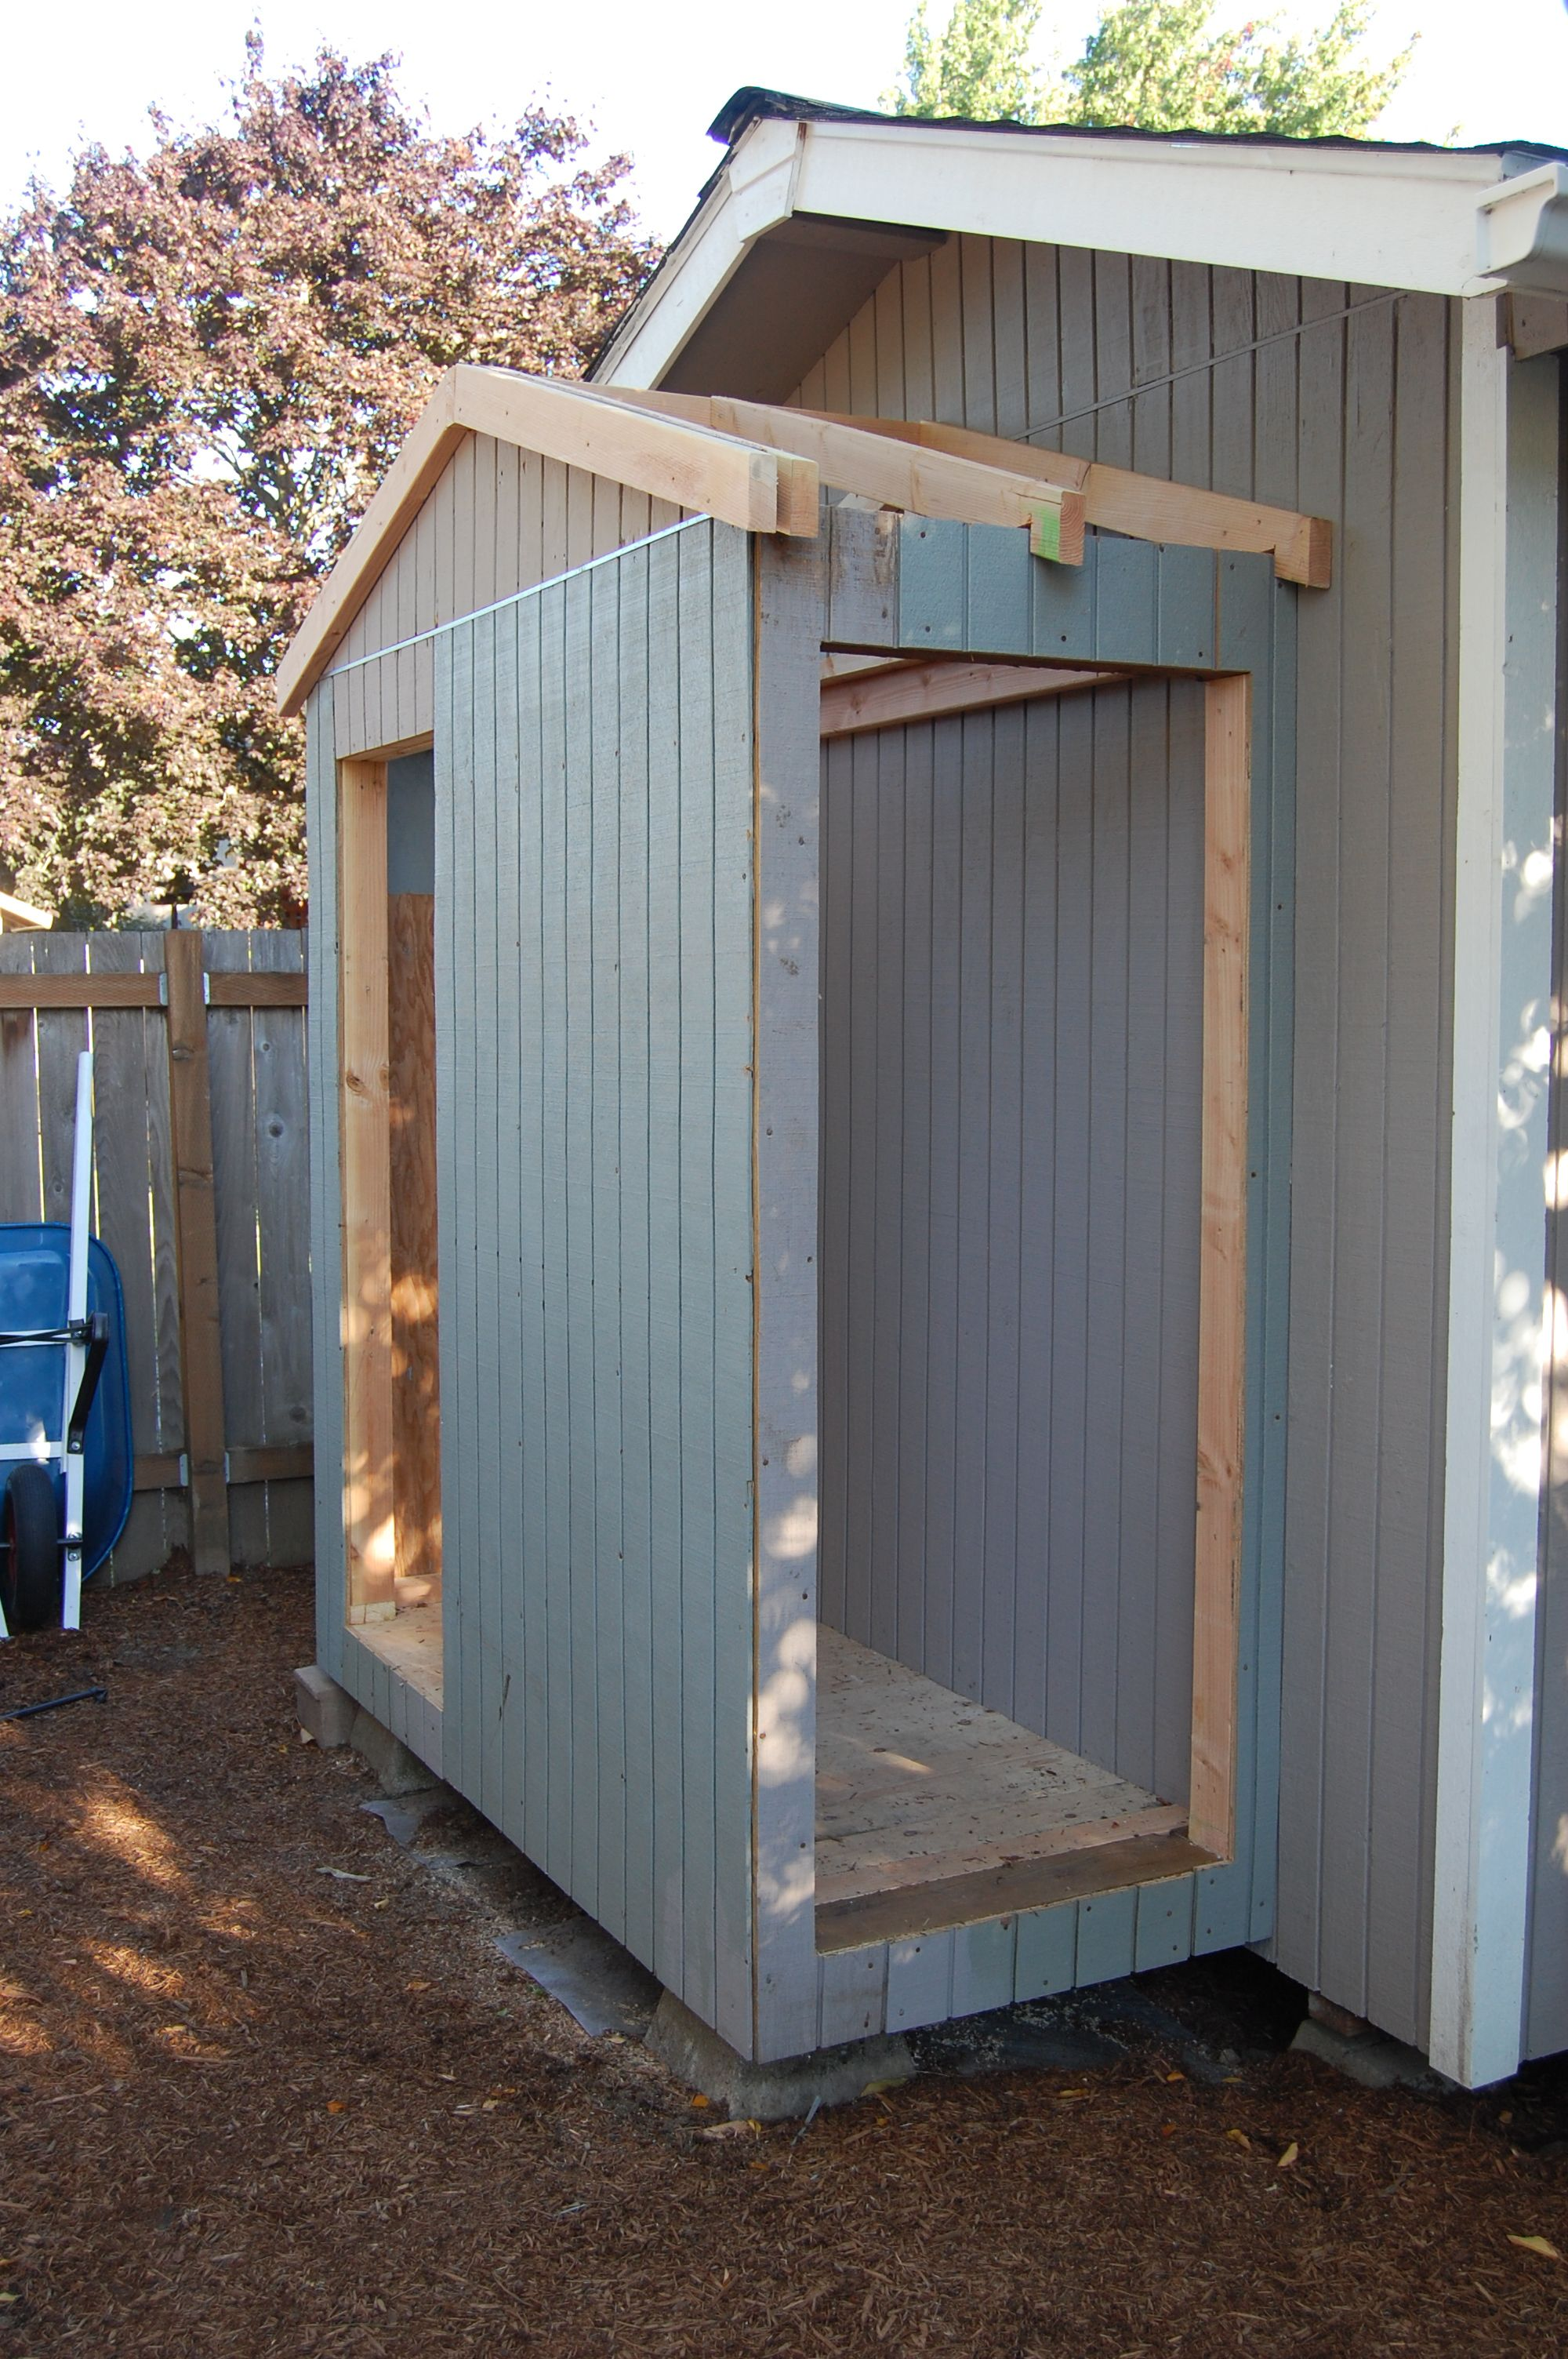 I Had To Add A Garage For My Lawn Mower Backyard Sheds Shed Storage Diy Shed Plans